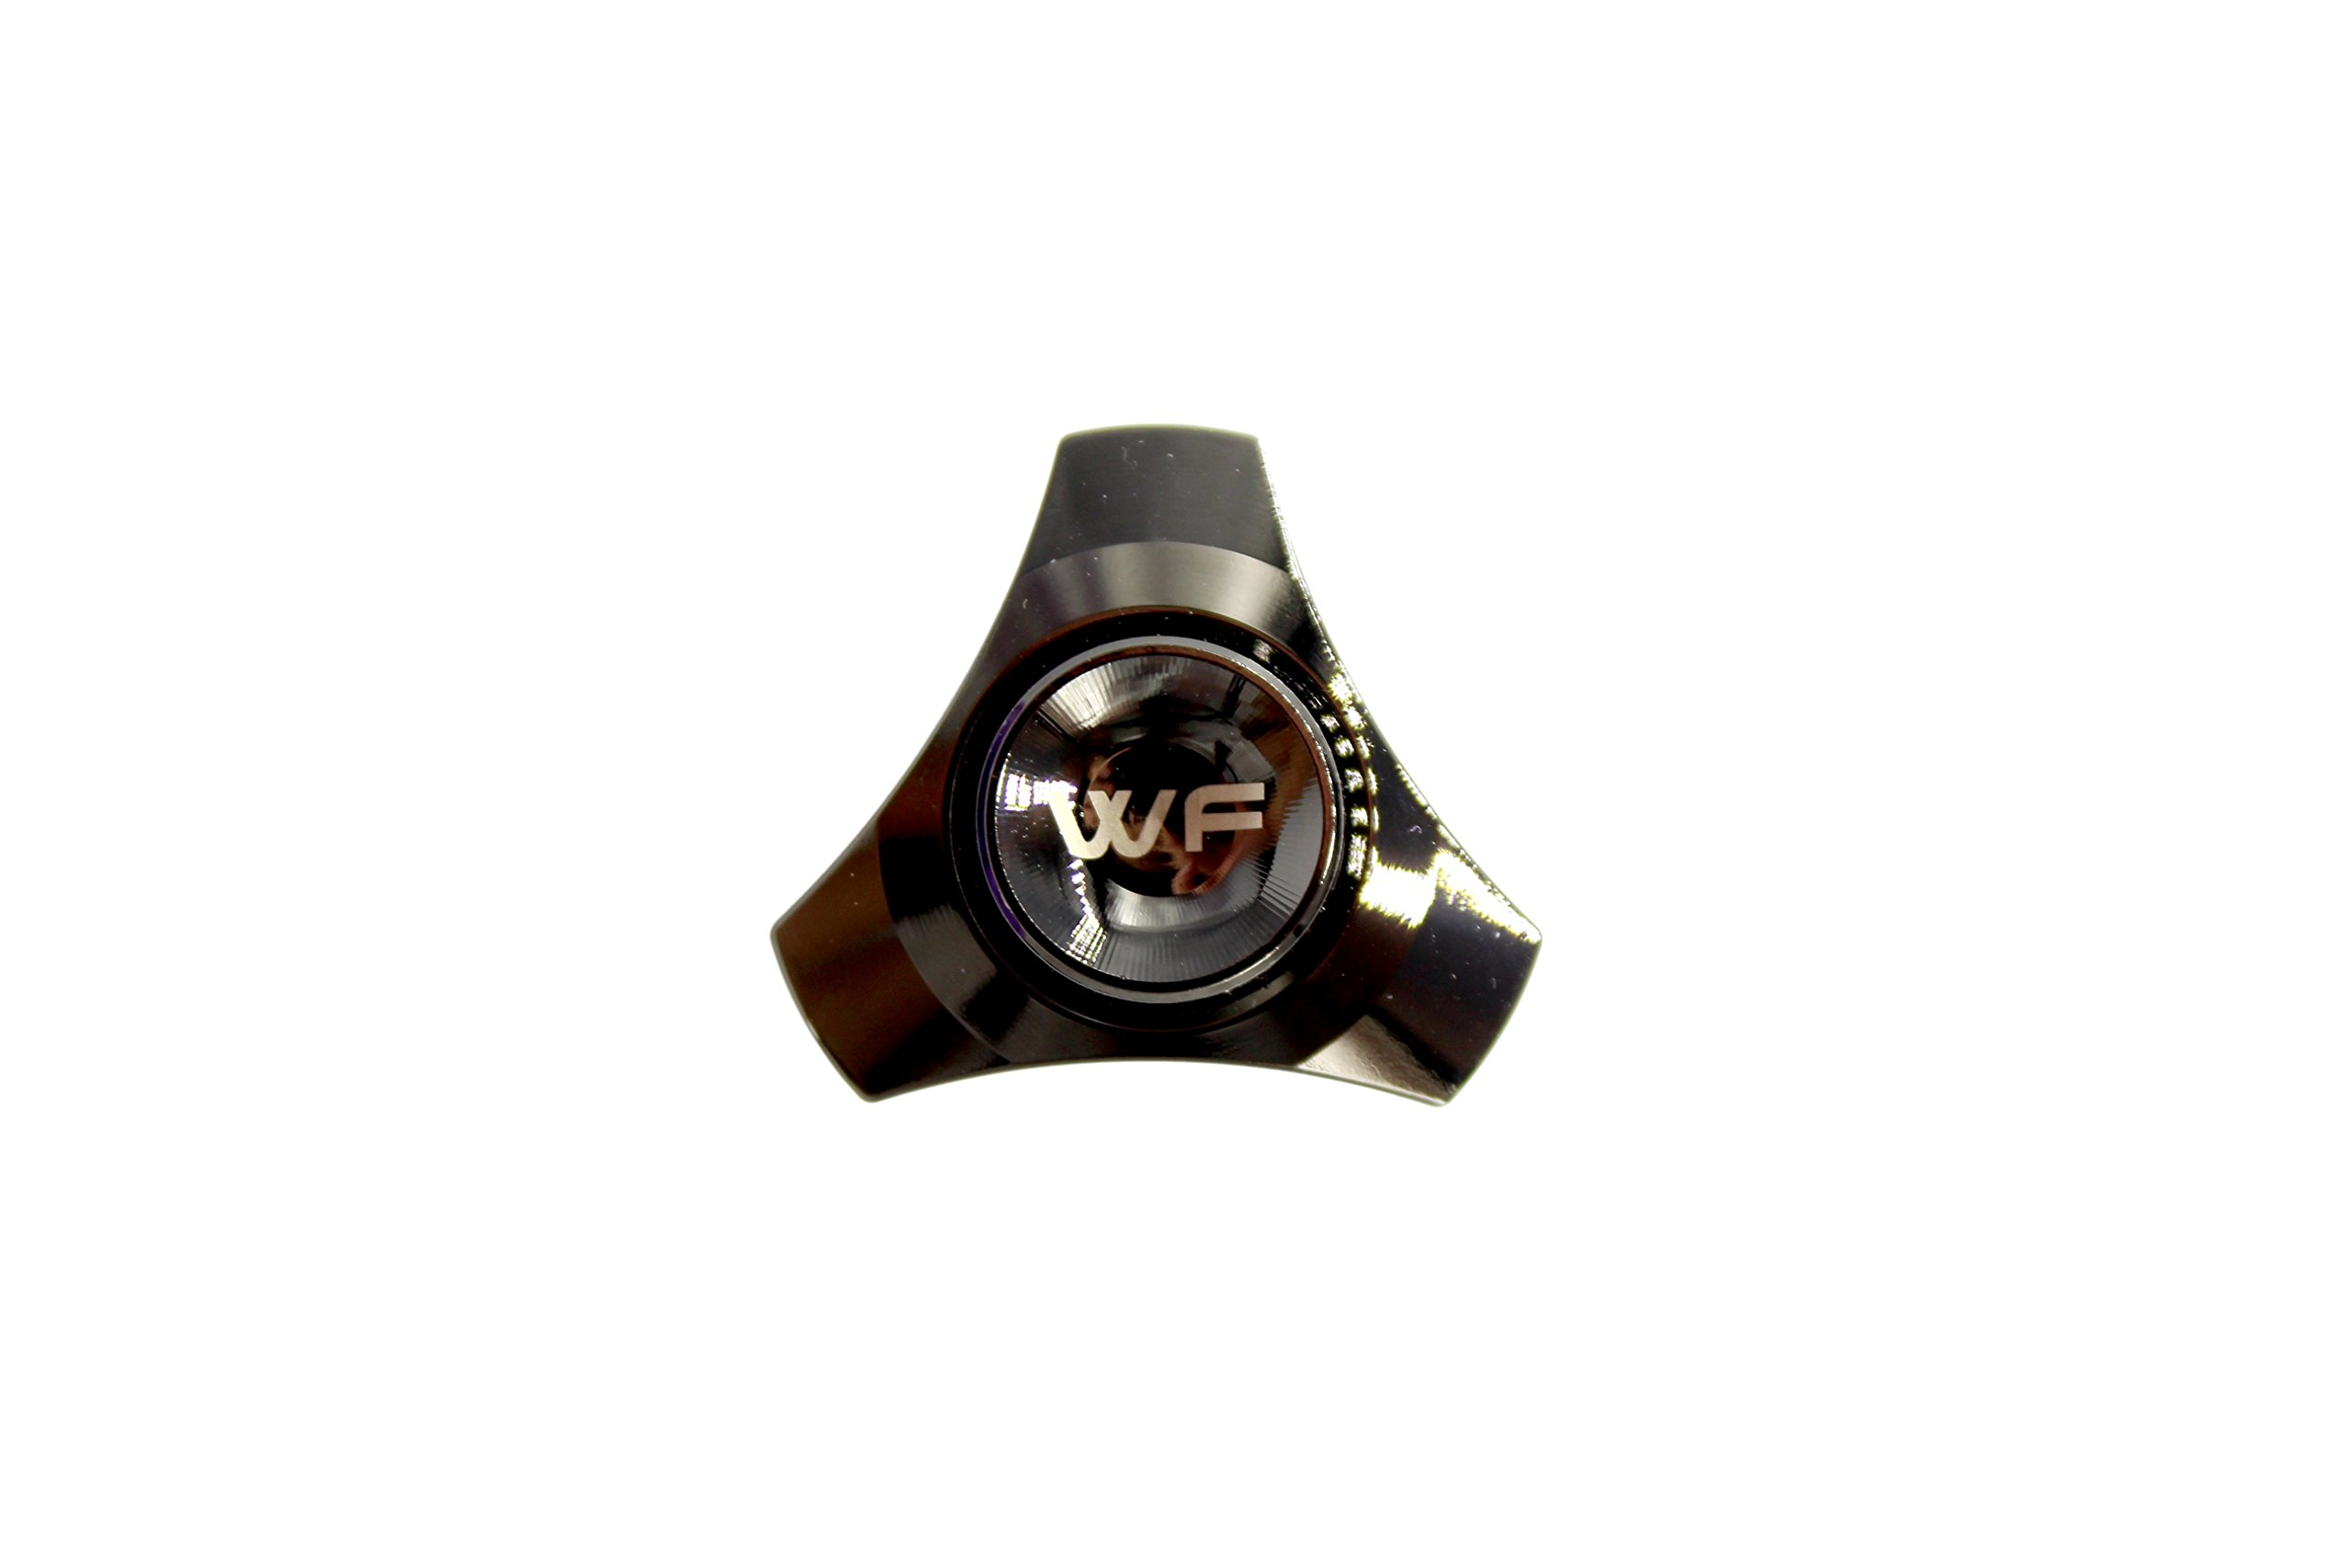 WeFidget ELECTROPLATED Mini Hand Spinner Designs, Insane Spin Times, Super Discrete, Premium Finishes, Replaceable Bearings, Travel Case Included, Obsidian Black